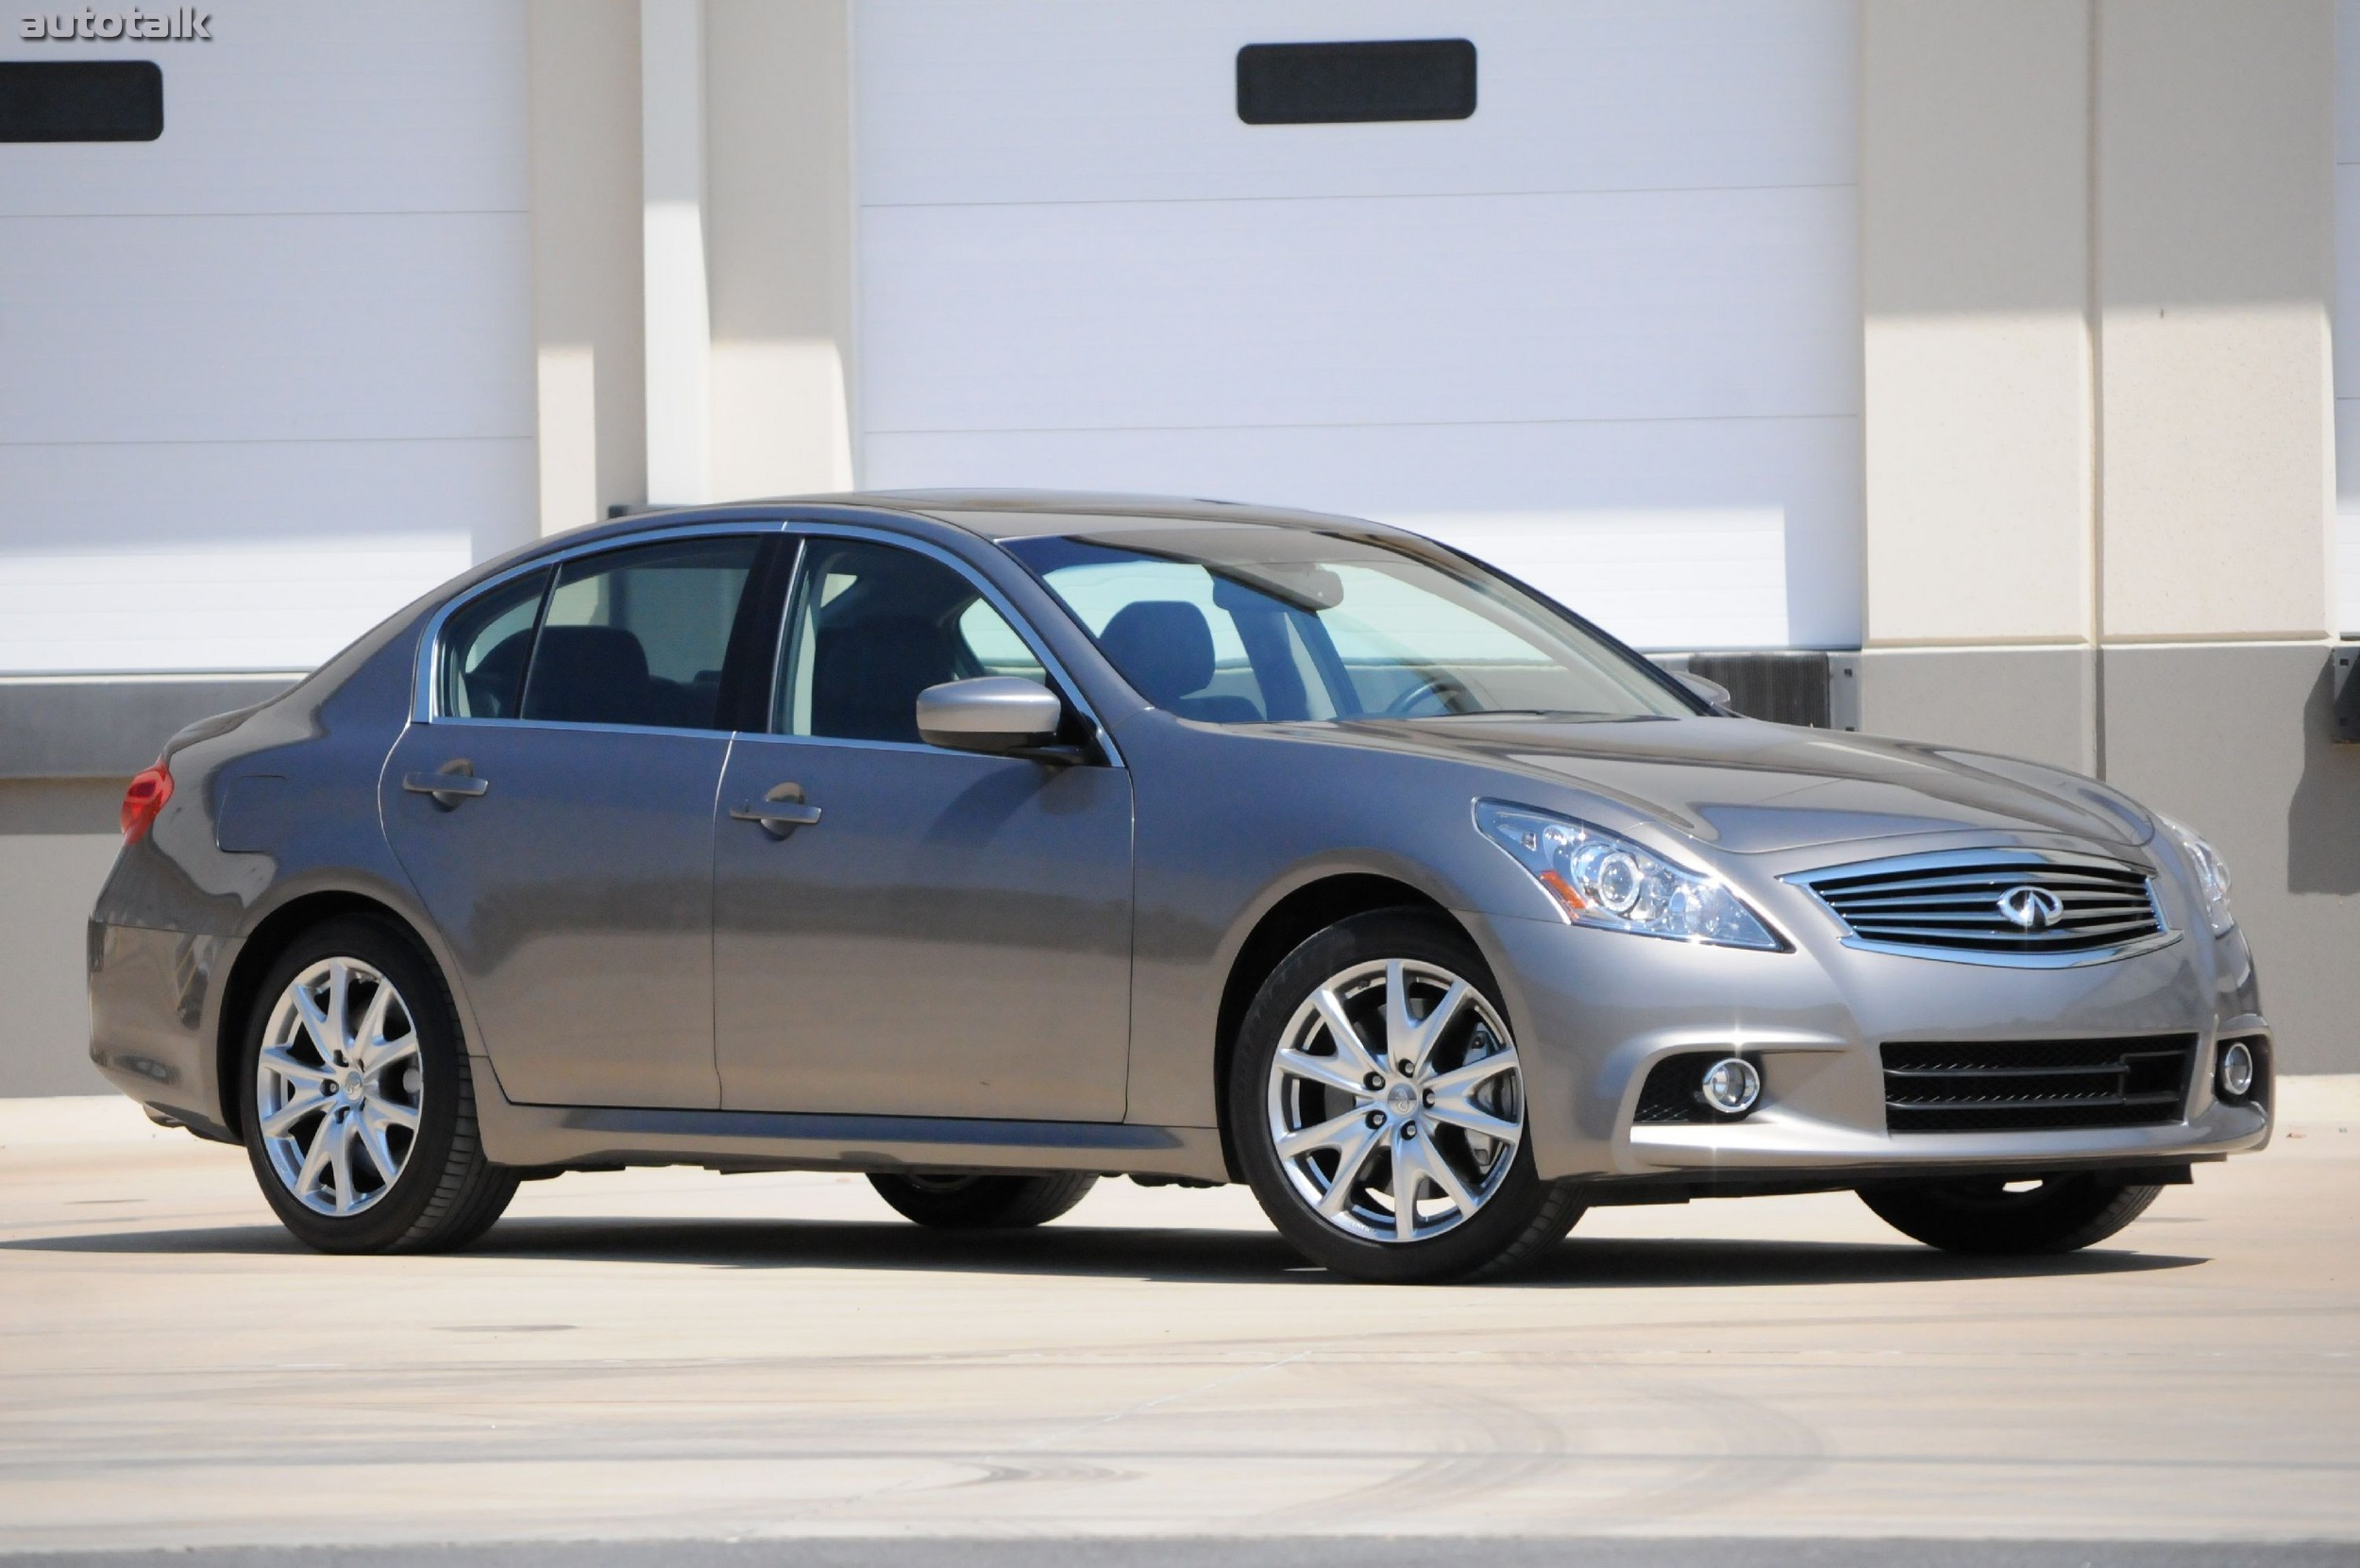 2011 infiniti g37 sedan review autotalk. Black Bedroom Furniture Sets. Home Design Ideas